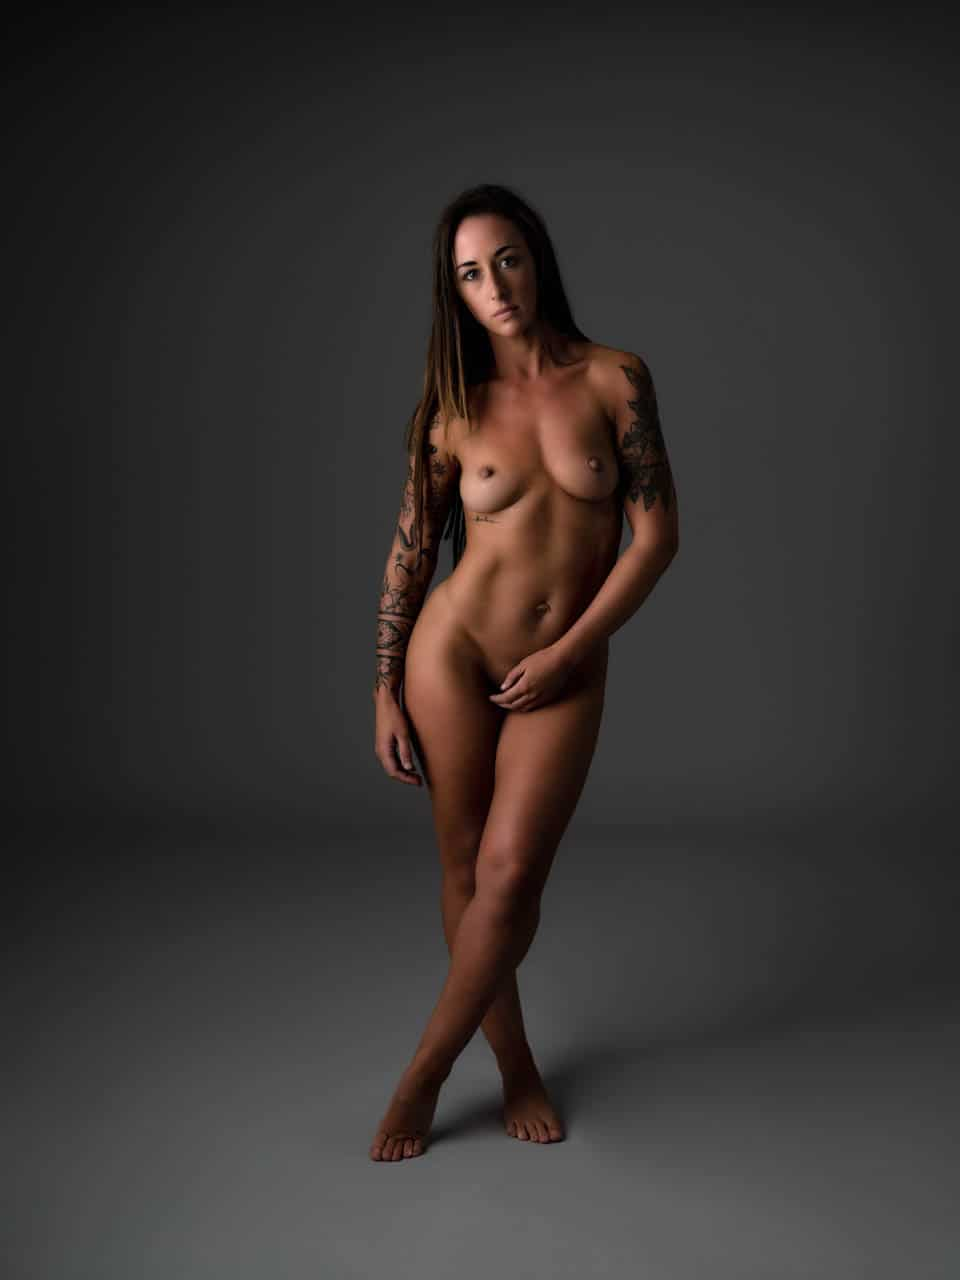 Nude Photography Auckland